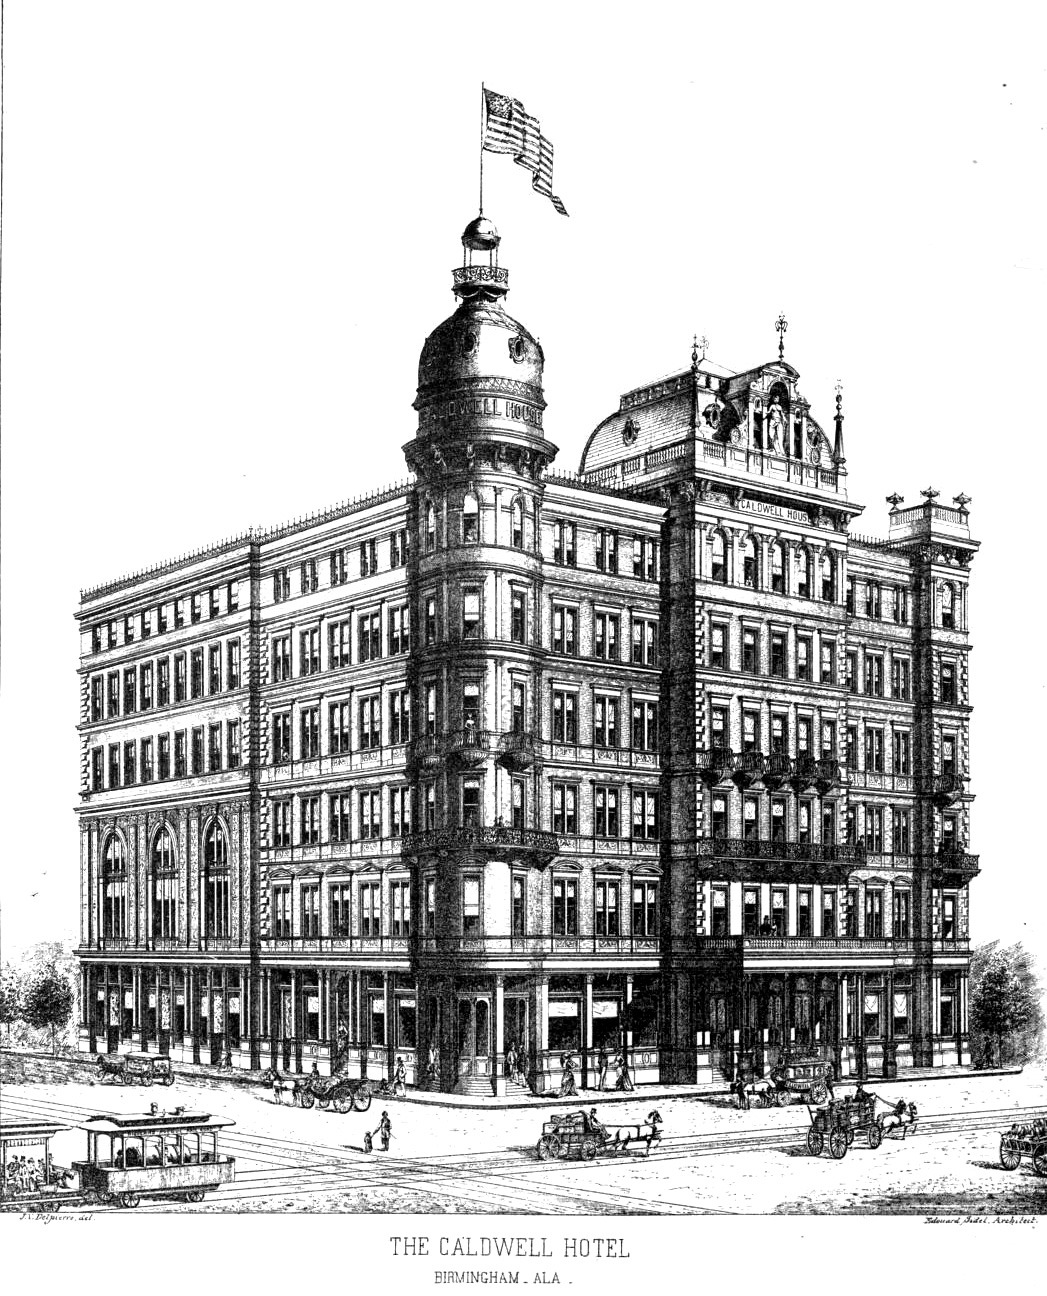 The Caldwell Hotel, Birmingham, Alabama